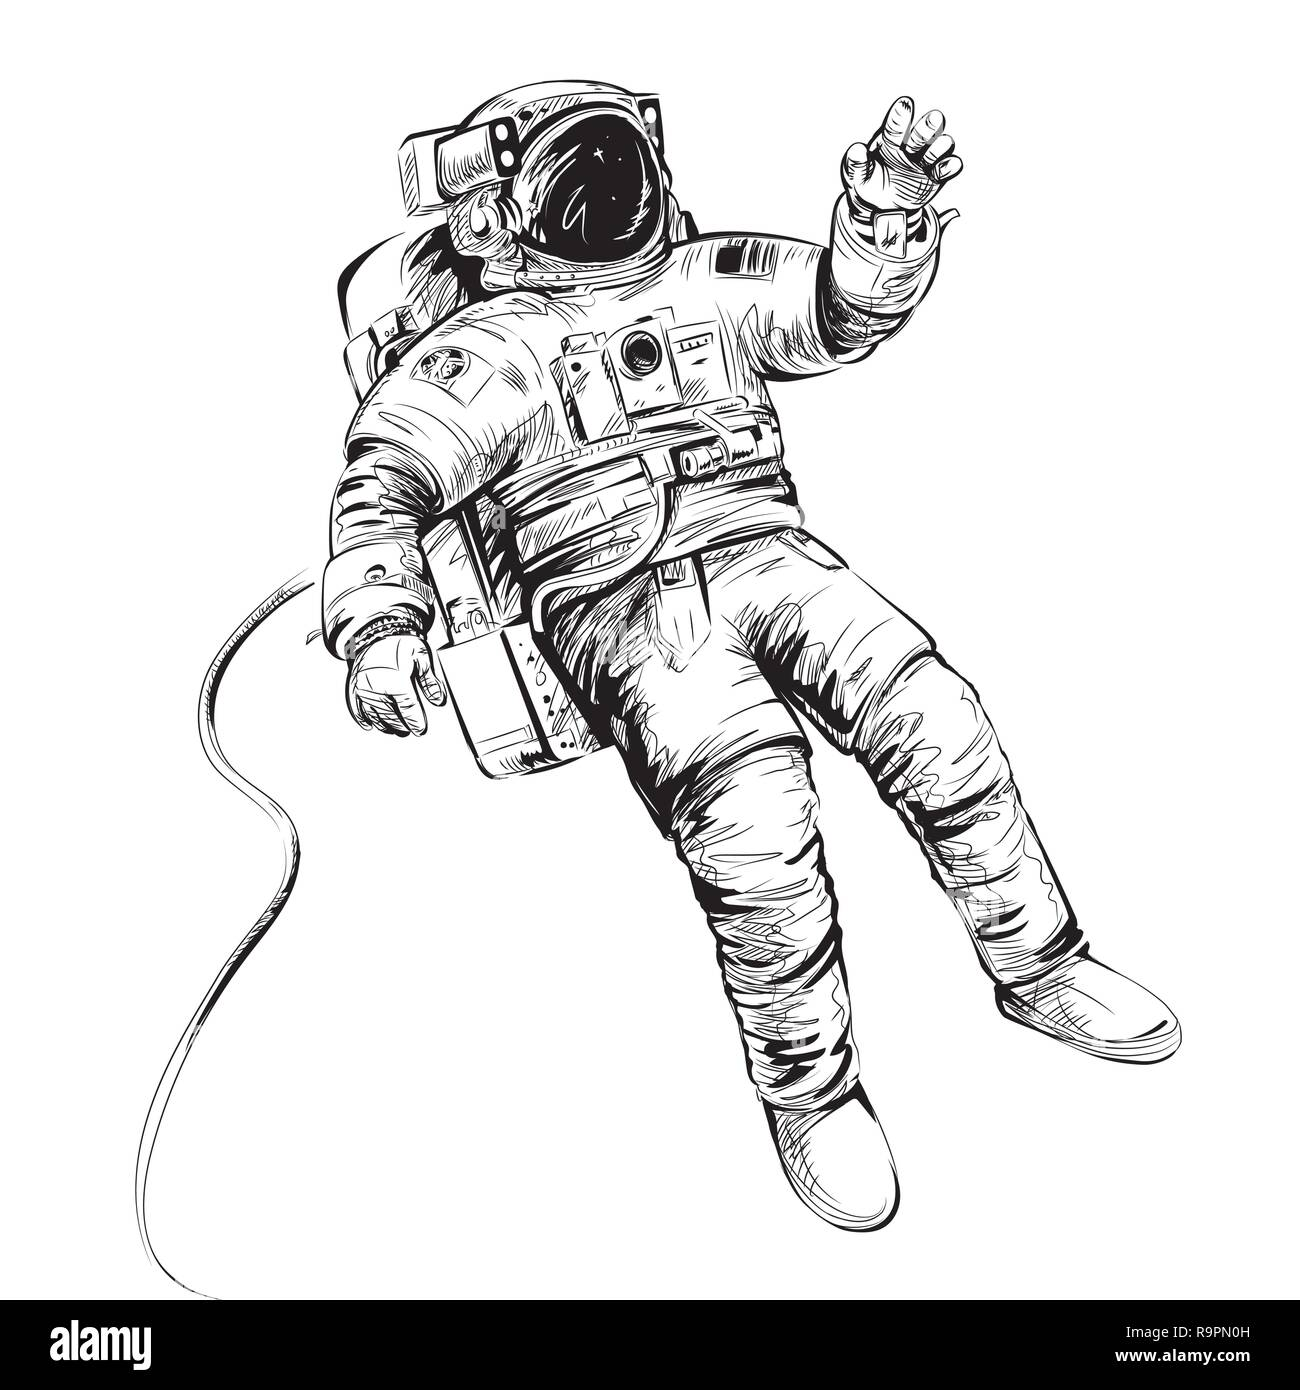 Cosmonaut or astronaut in spacesuit. Vector illustration isolated on white. - Stock Image